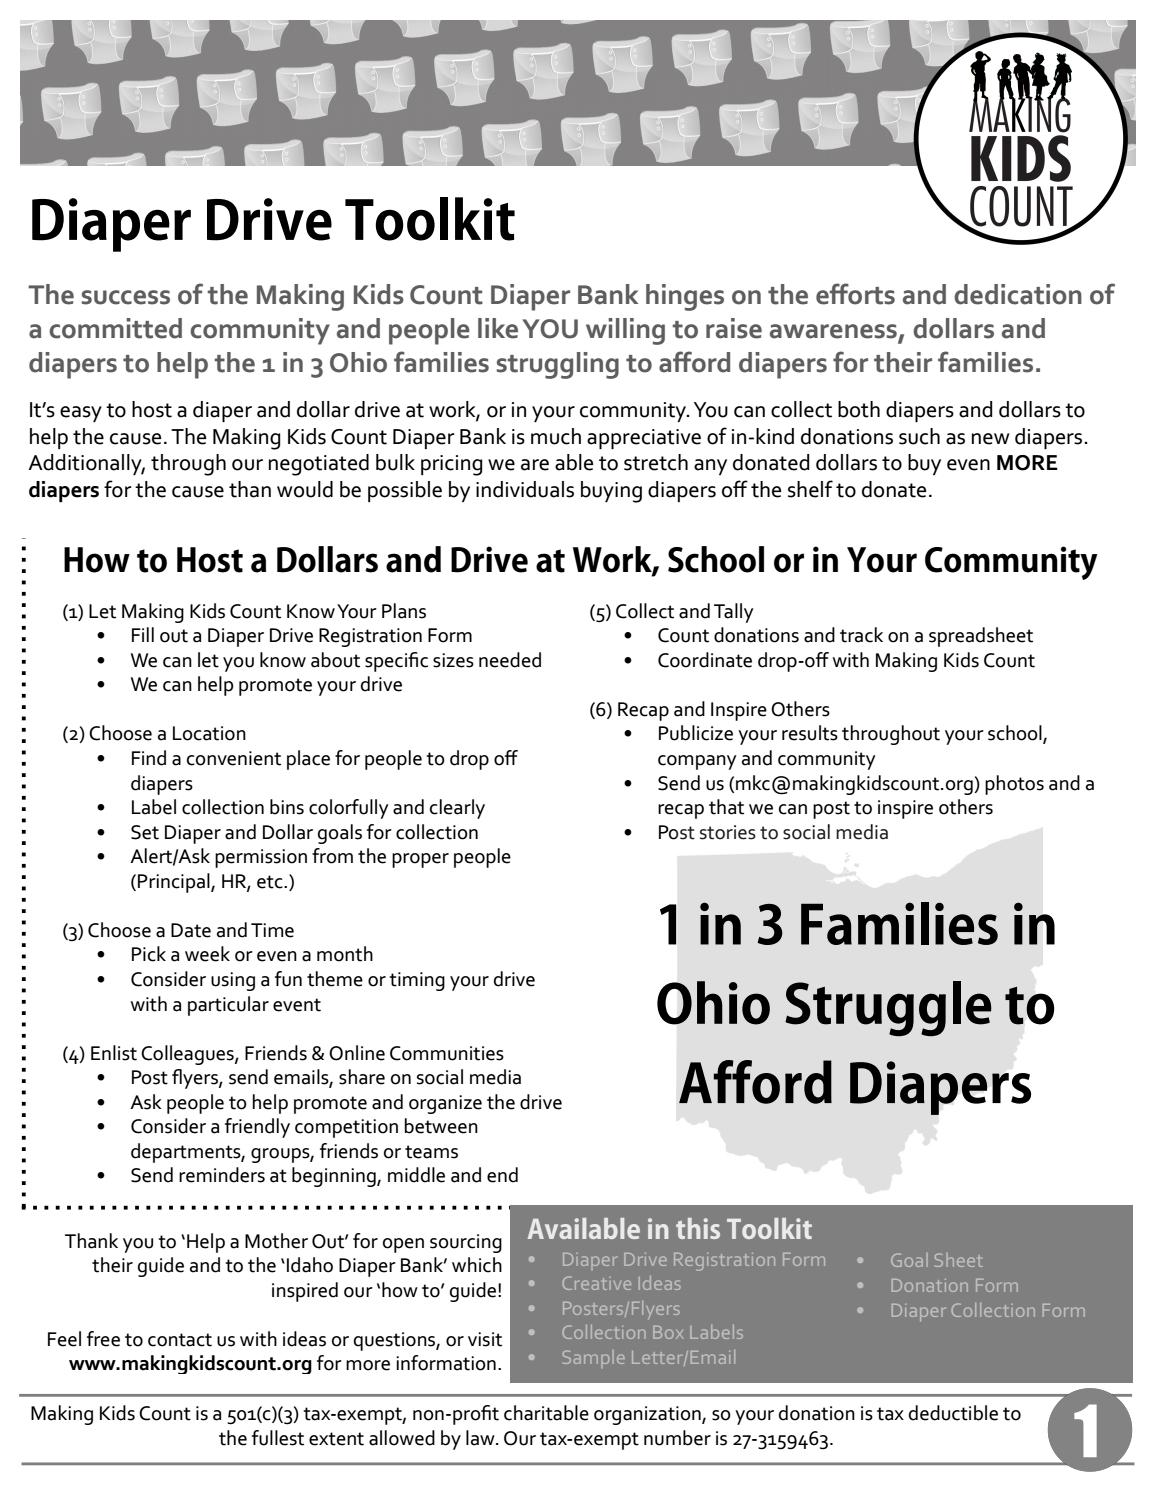 Making Kids Count Diaper Drive Toolkit By Jana Coffin Issuu